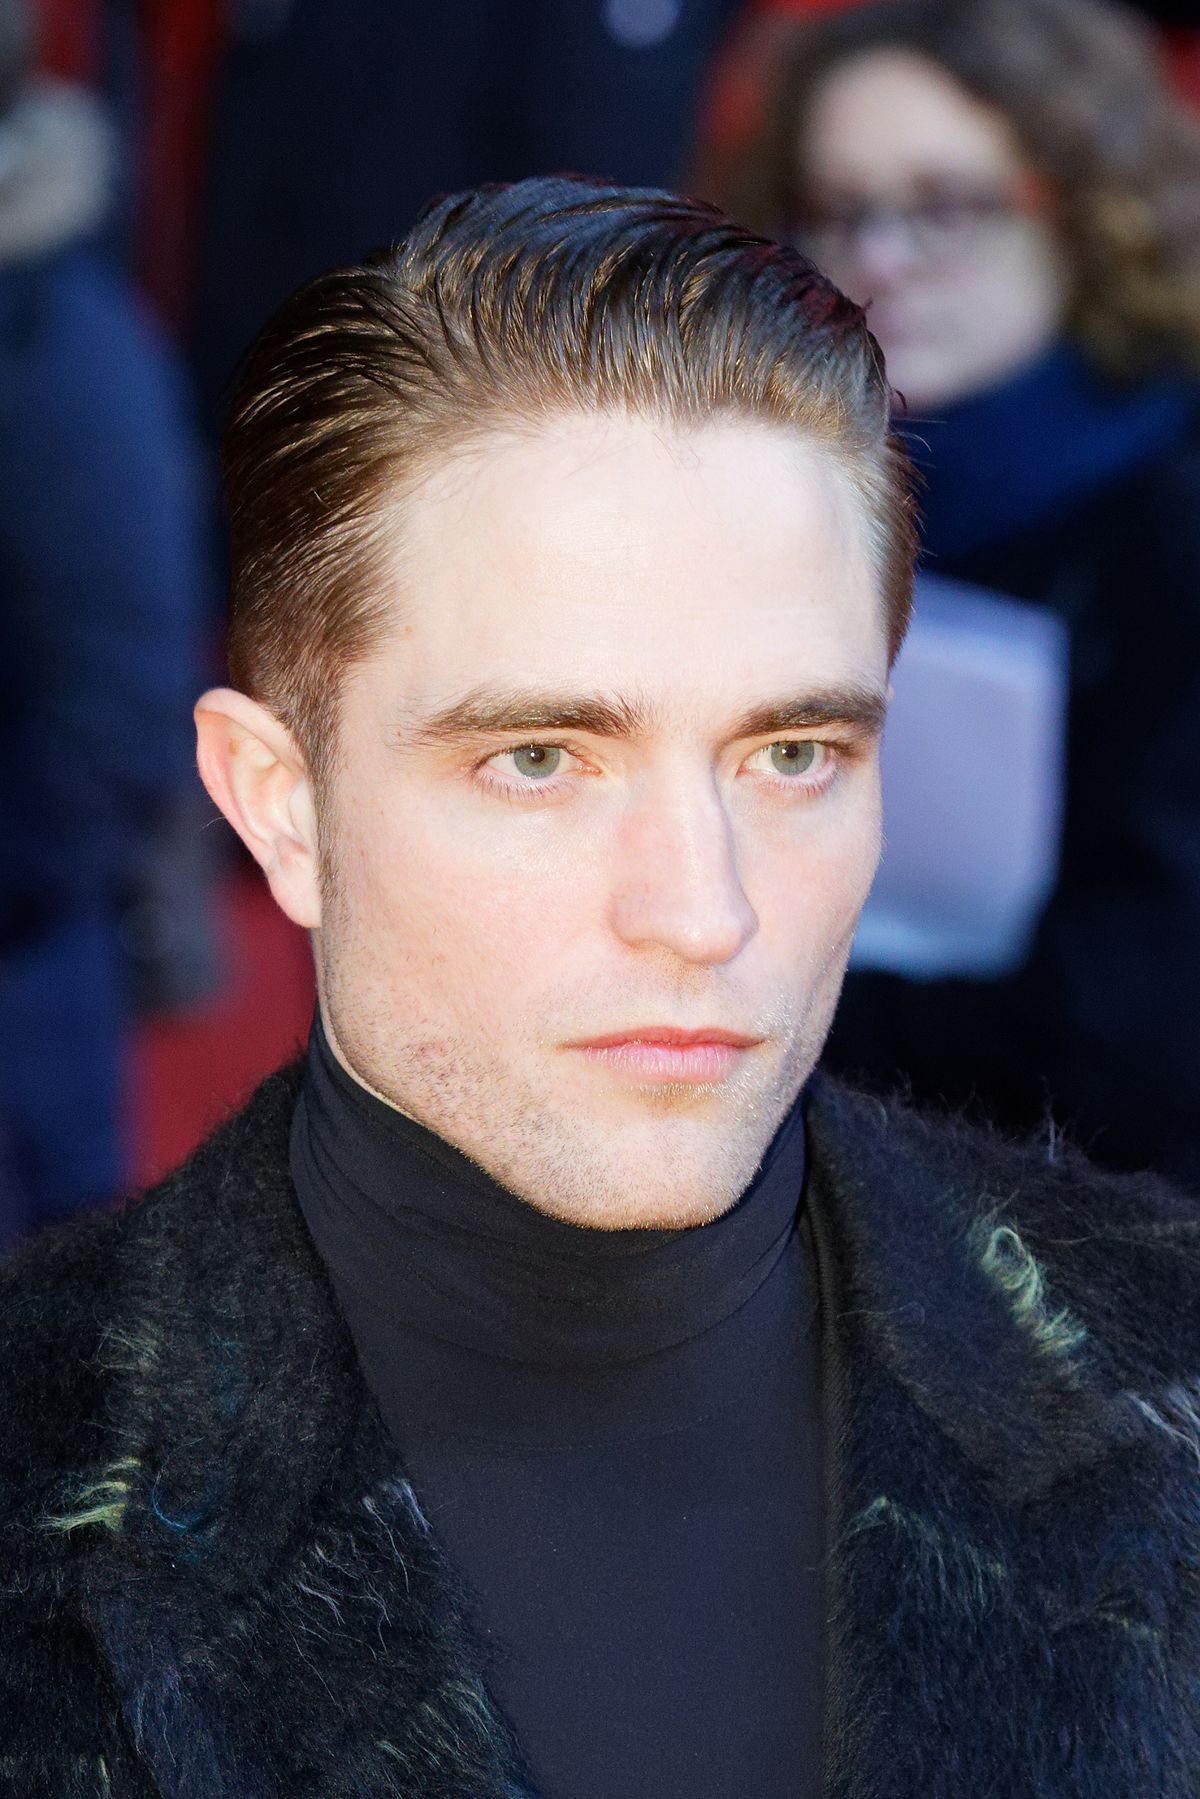 pattinson robert edward cullen actor batman actors wikipedia most thomas british london cedric potter harry diggory wiki english film douglas